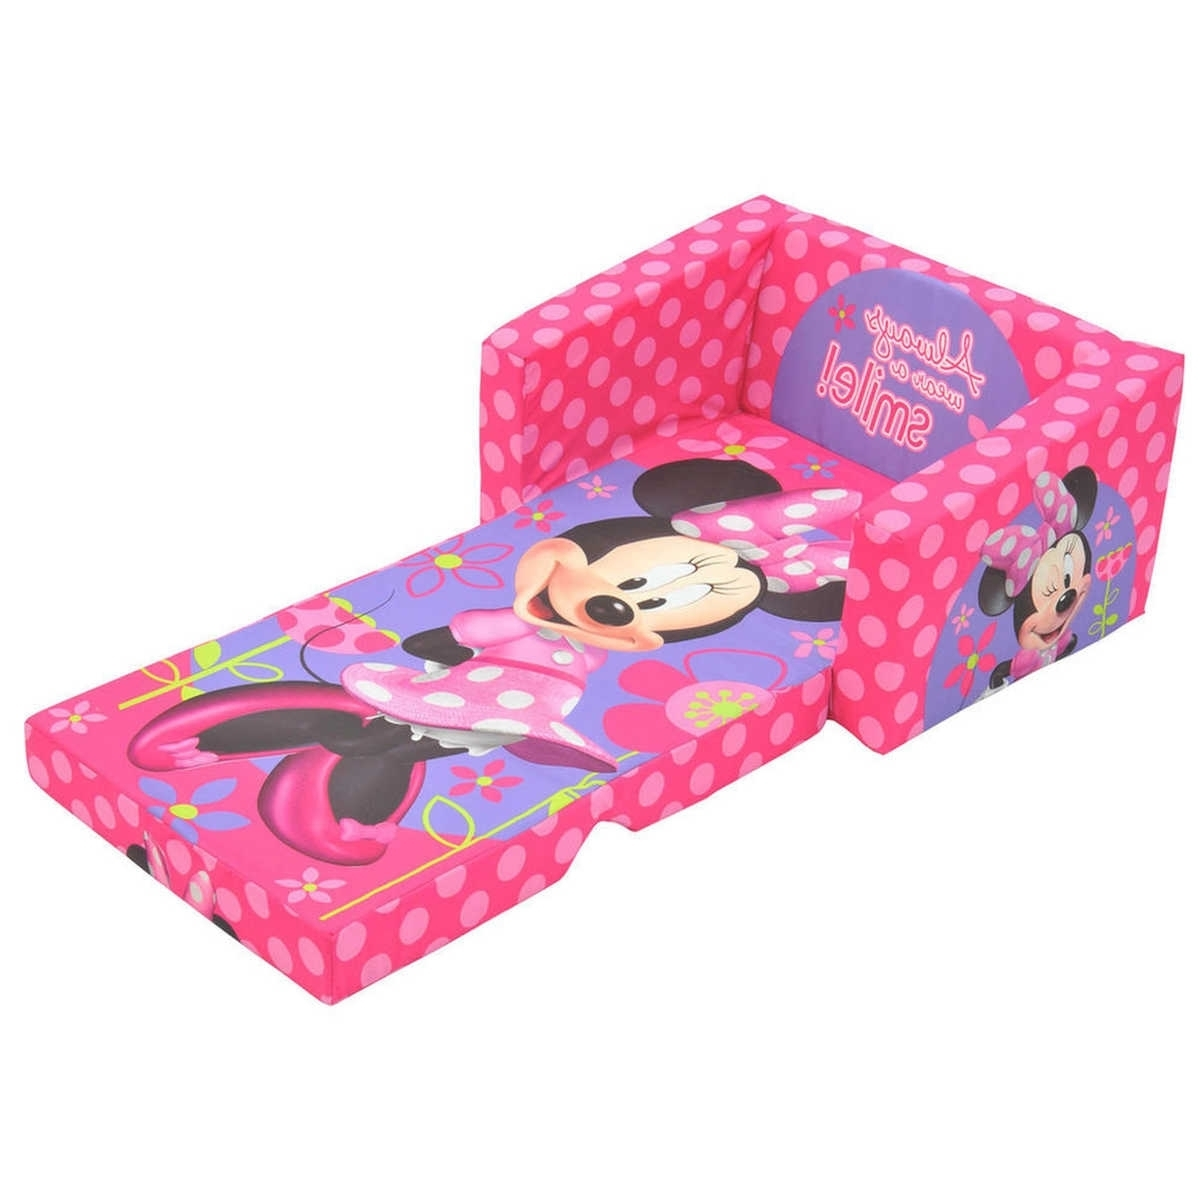 Minnie Mouse Flip Out Sofa Bed • Sofa Bed Pertaining To Latest Flip Out Sofas (View 10 of 20)